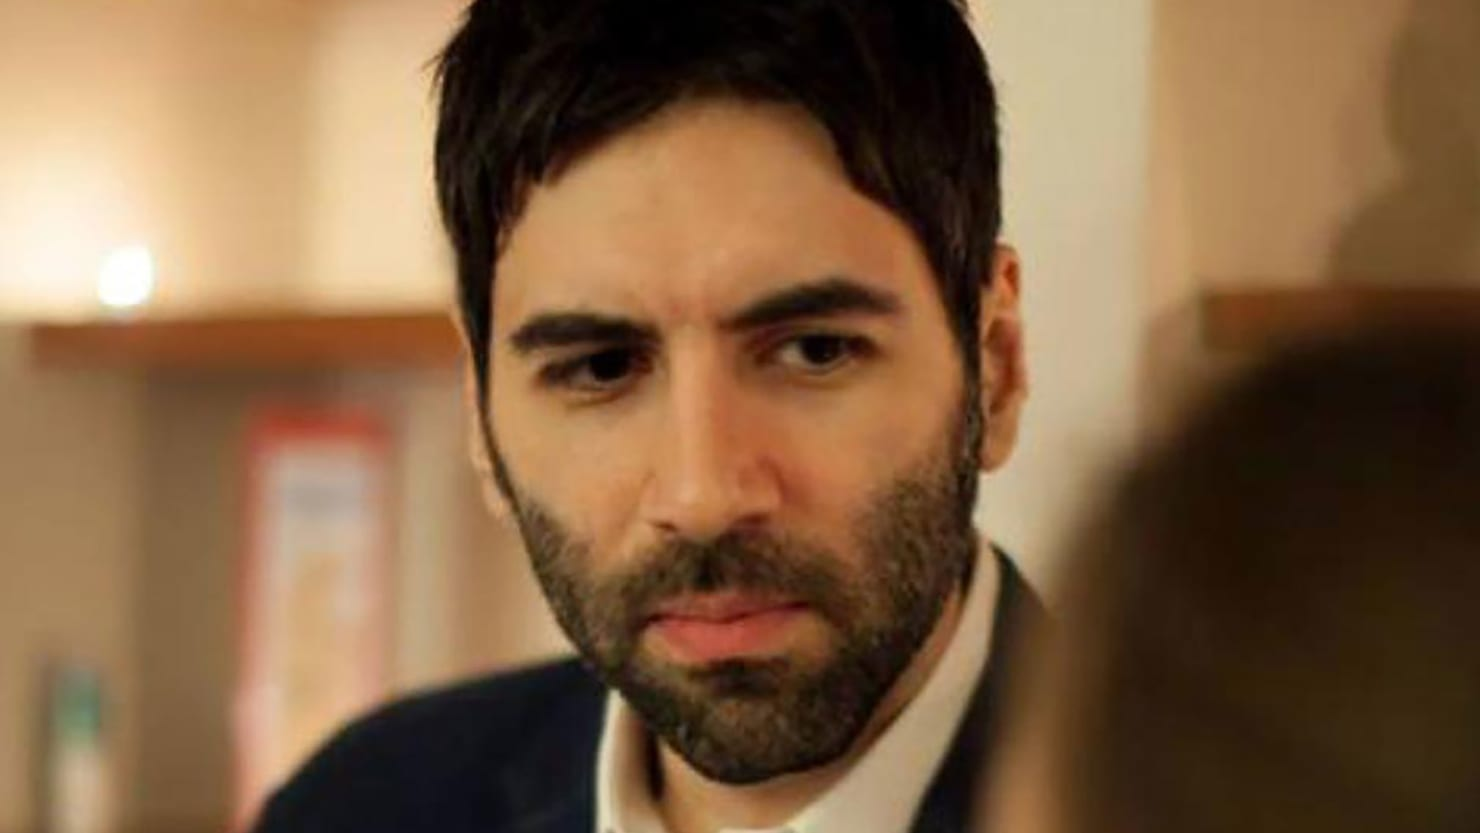 Noxious Pickup Artist Roosh Says He Has Found God